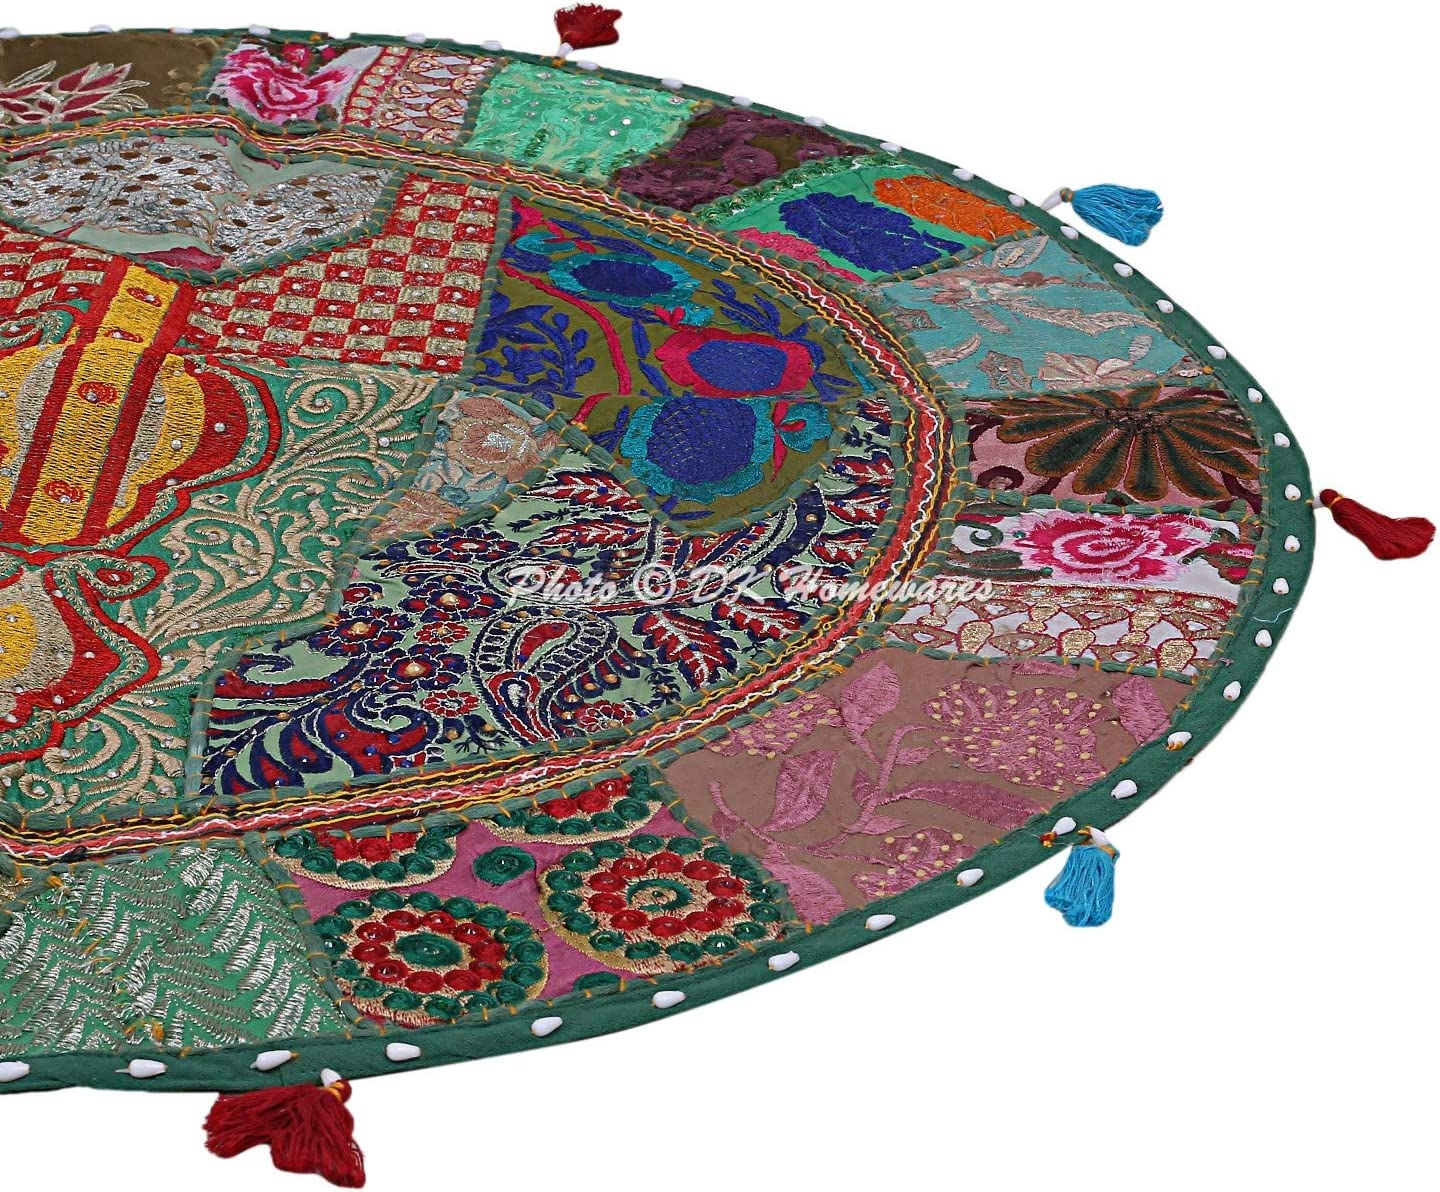 DK Homewares Round Traditional Floor Cushions Seating for Adults Dark Green 32 Inch Patchwork Living Room Pouf Ottoman Home Decor Embroidered Vintage Cotton Indian Floor Pillow Cover 80 cm